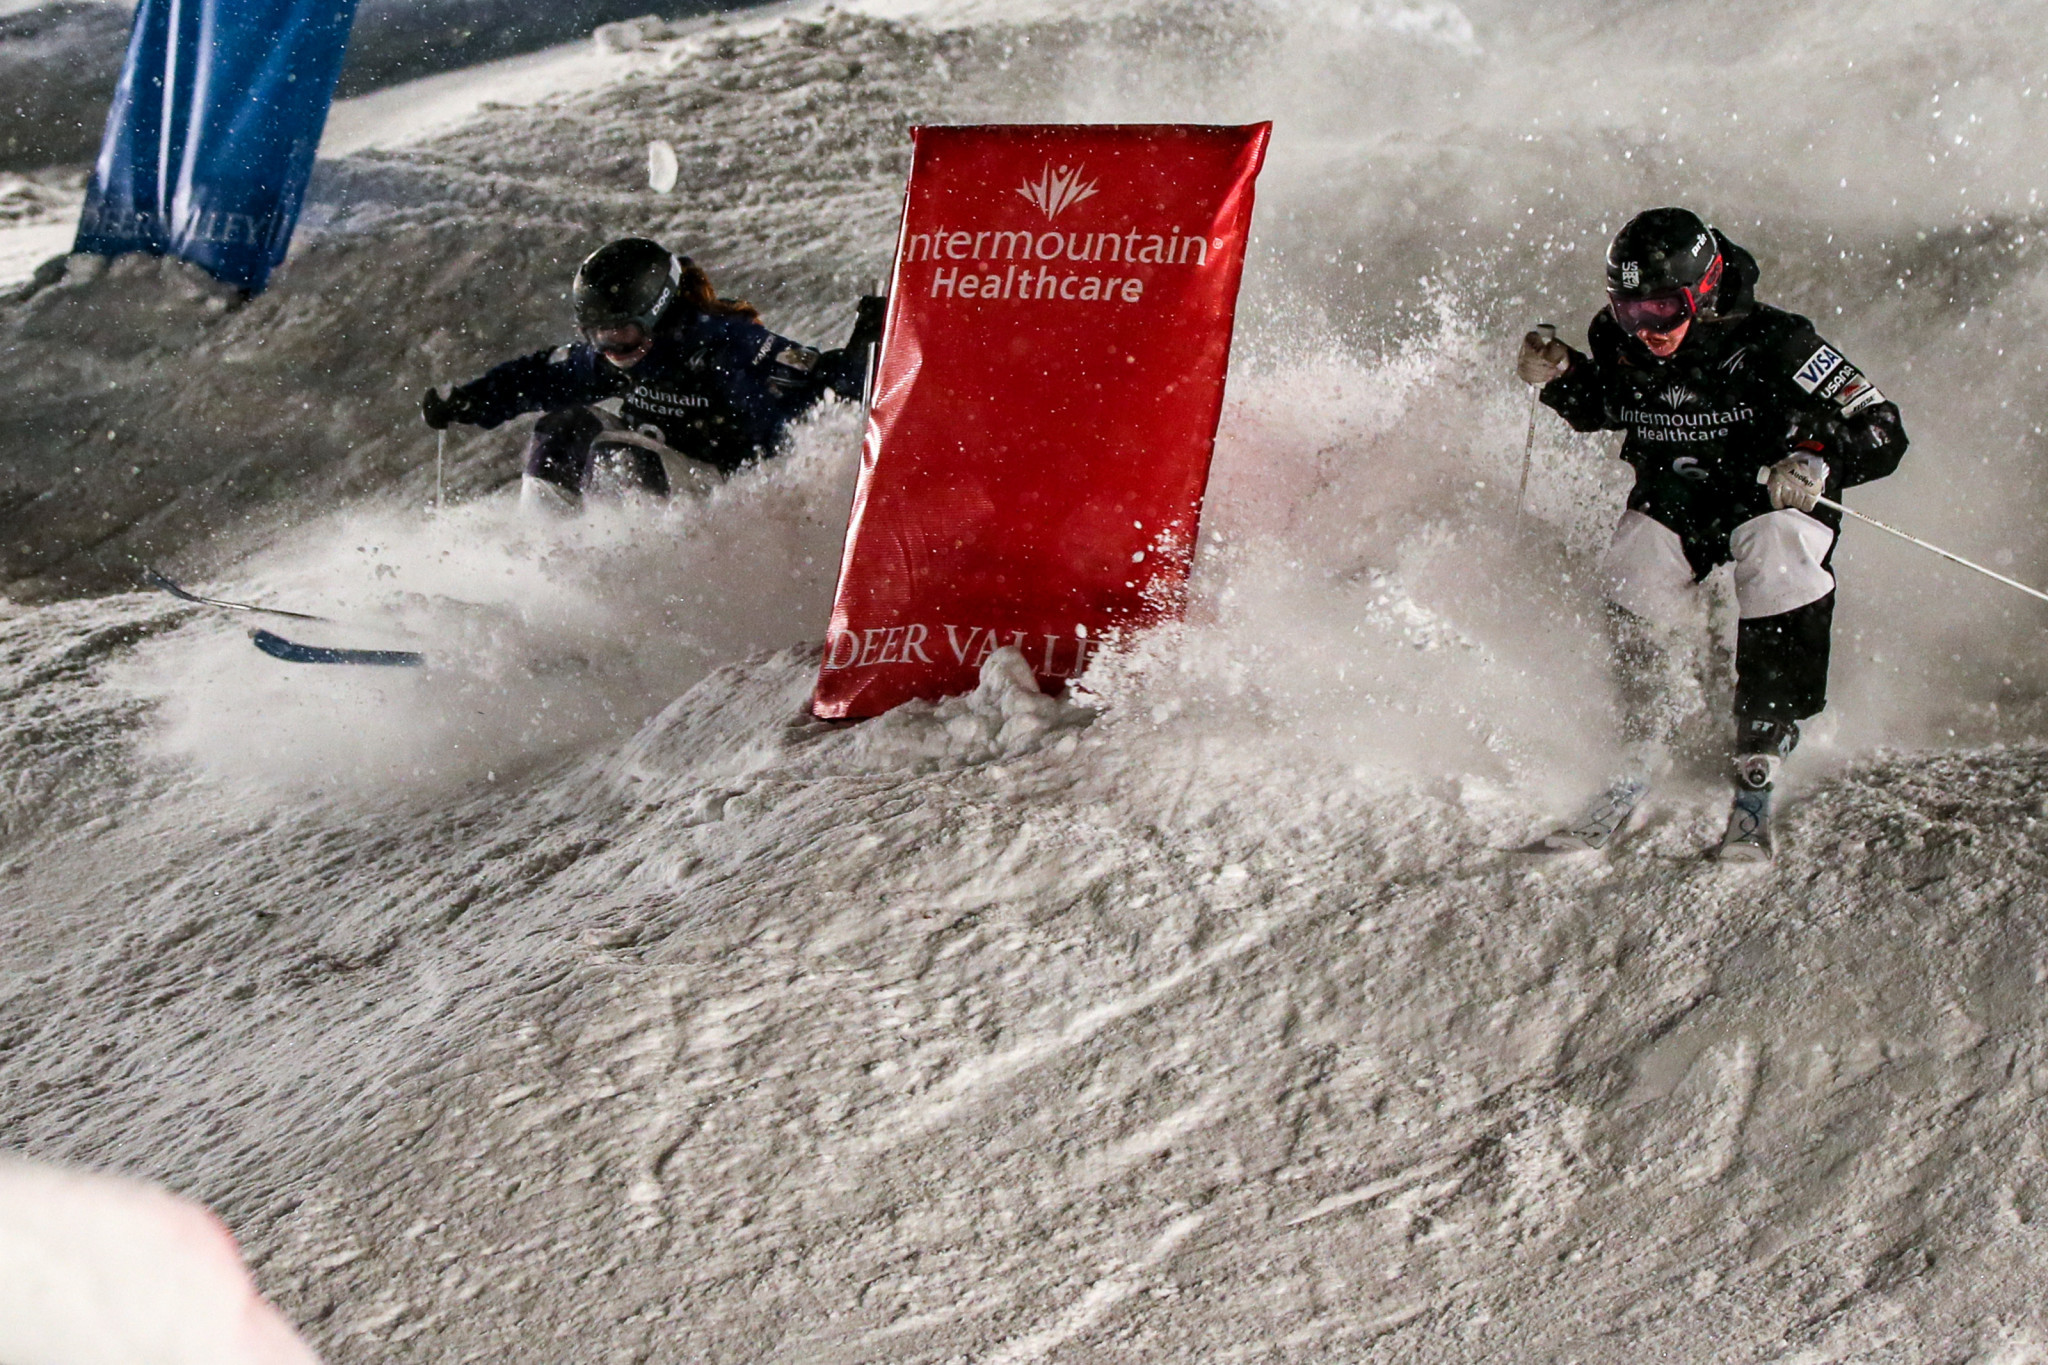 Freestyle Skiing At The 2020 Olympic Winter Games.Fis Confirms 2019 2020 Freestyle Skiing World Cup Calendar